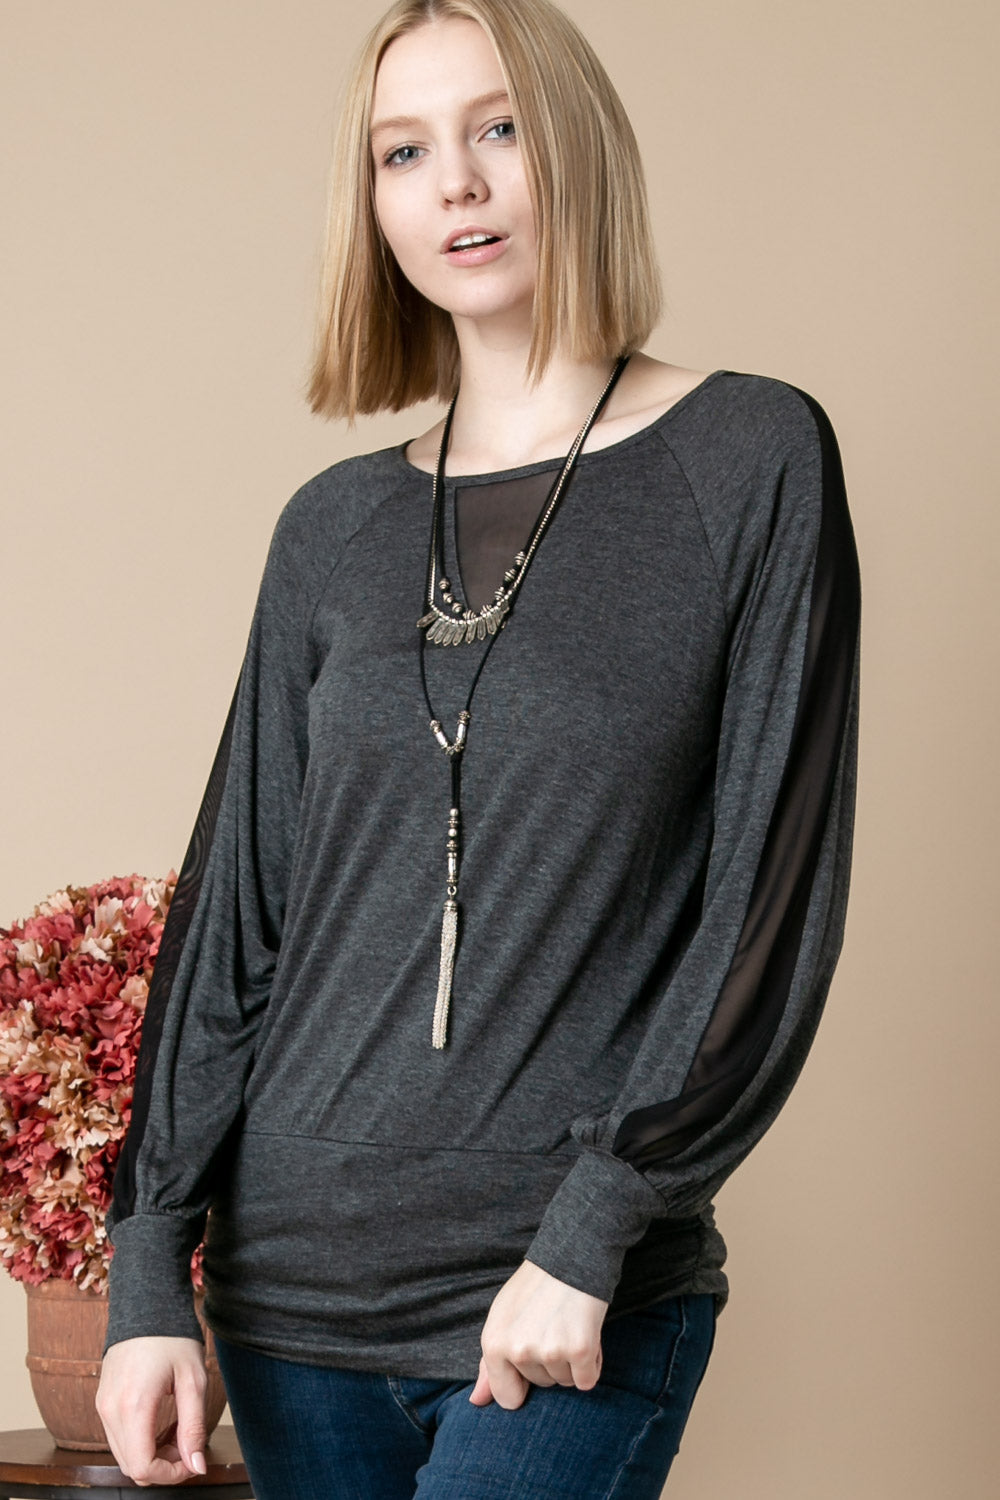 Shirred Band Mesh Insert Blouse - besties STUDIOS